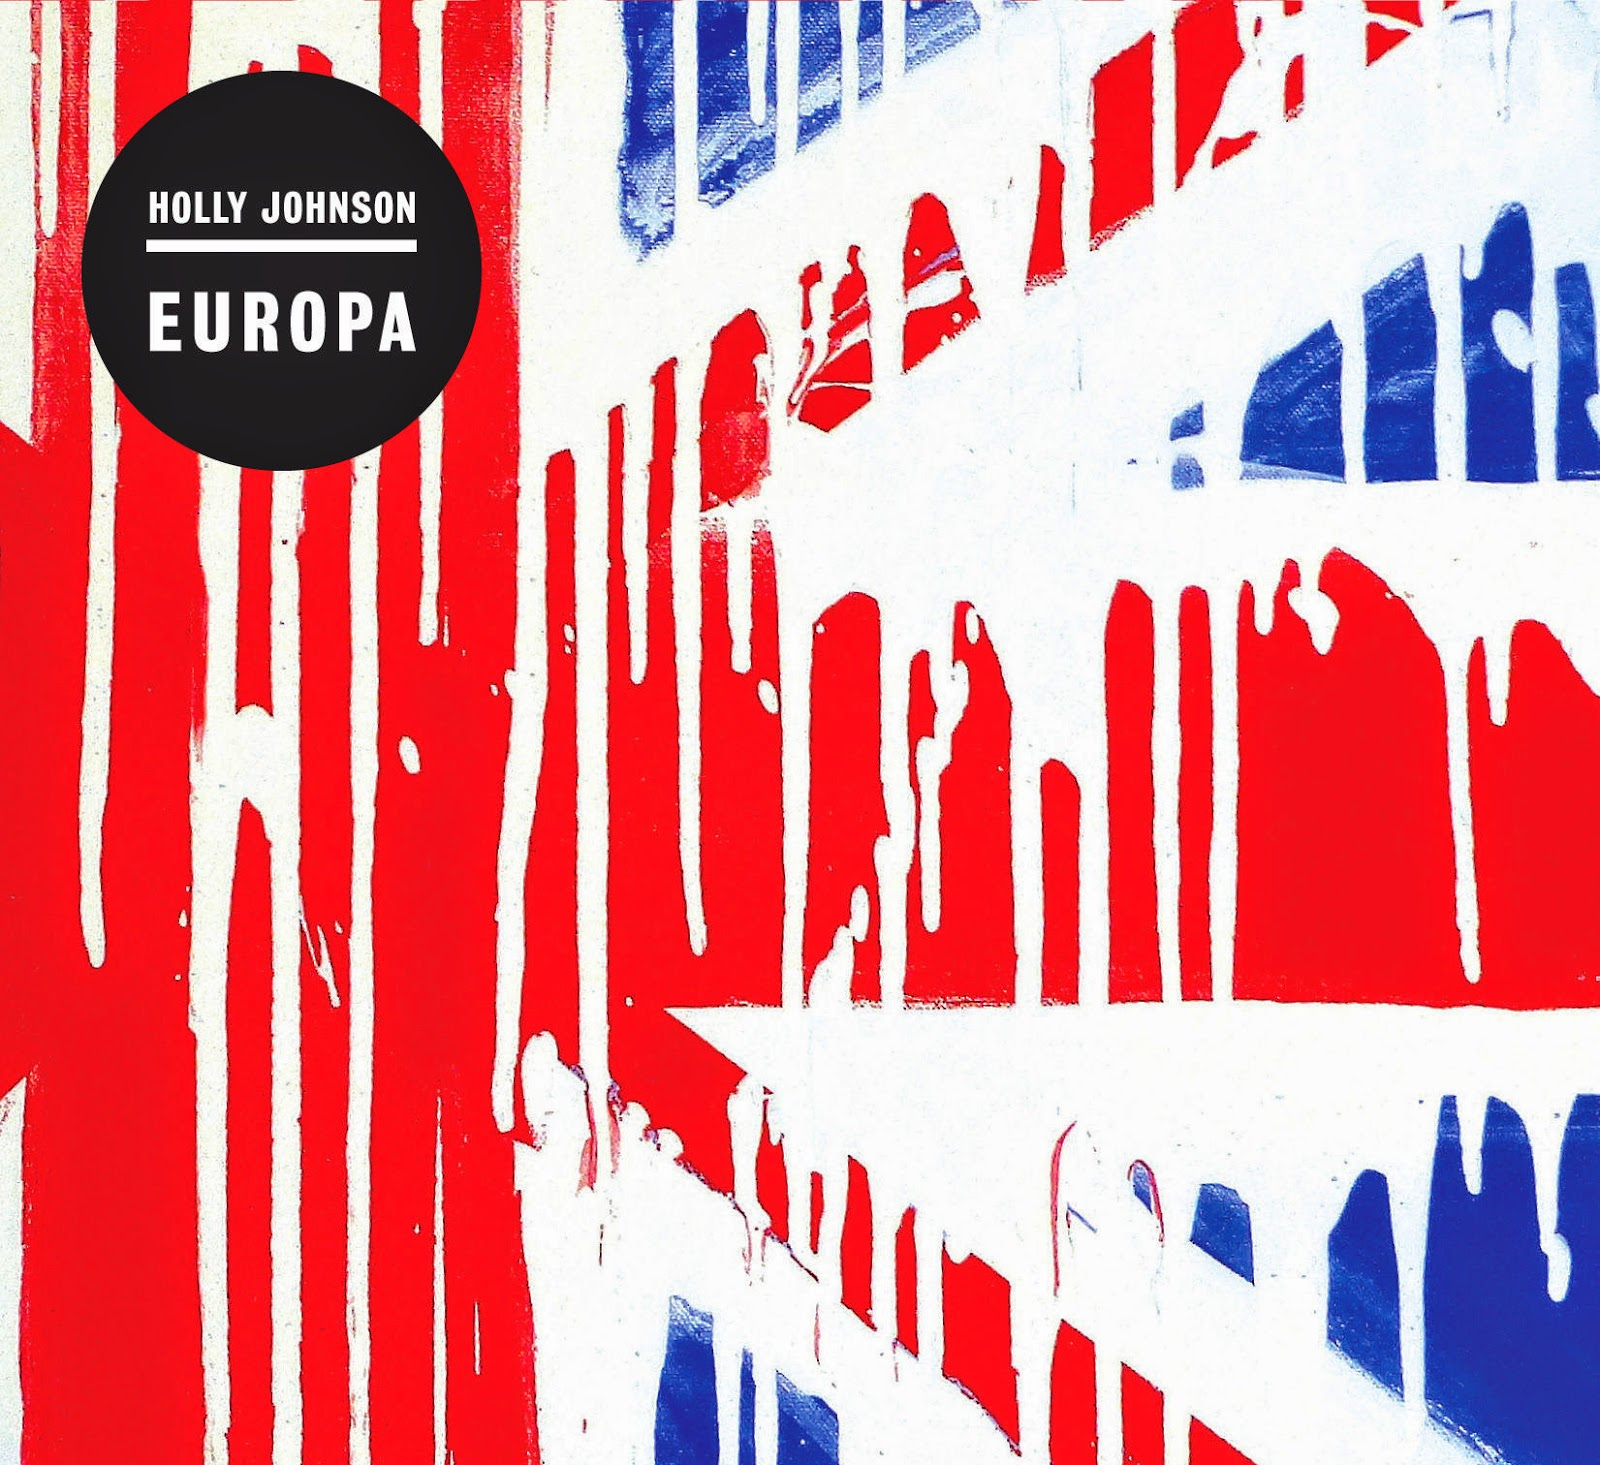 Holly Johnson - Europa